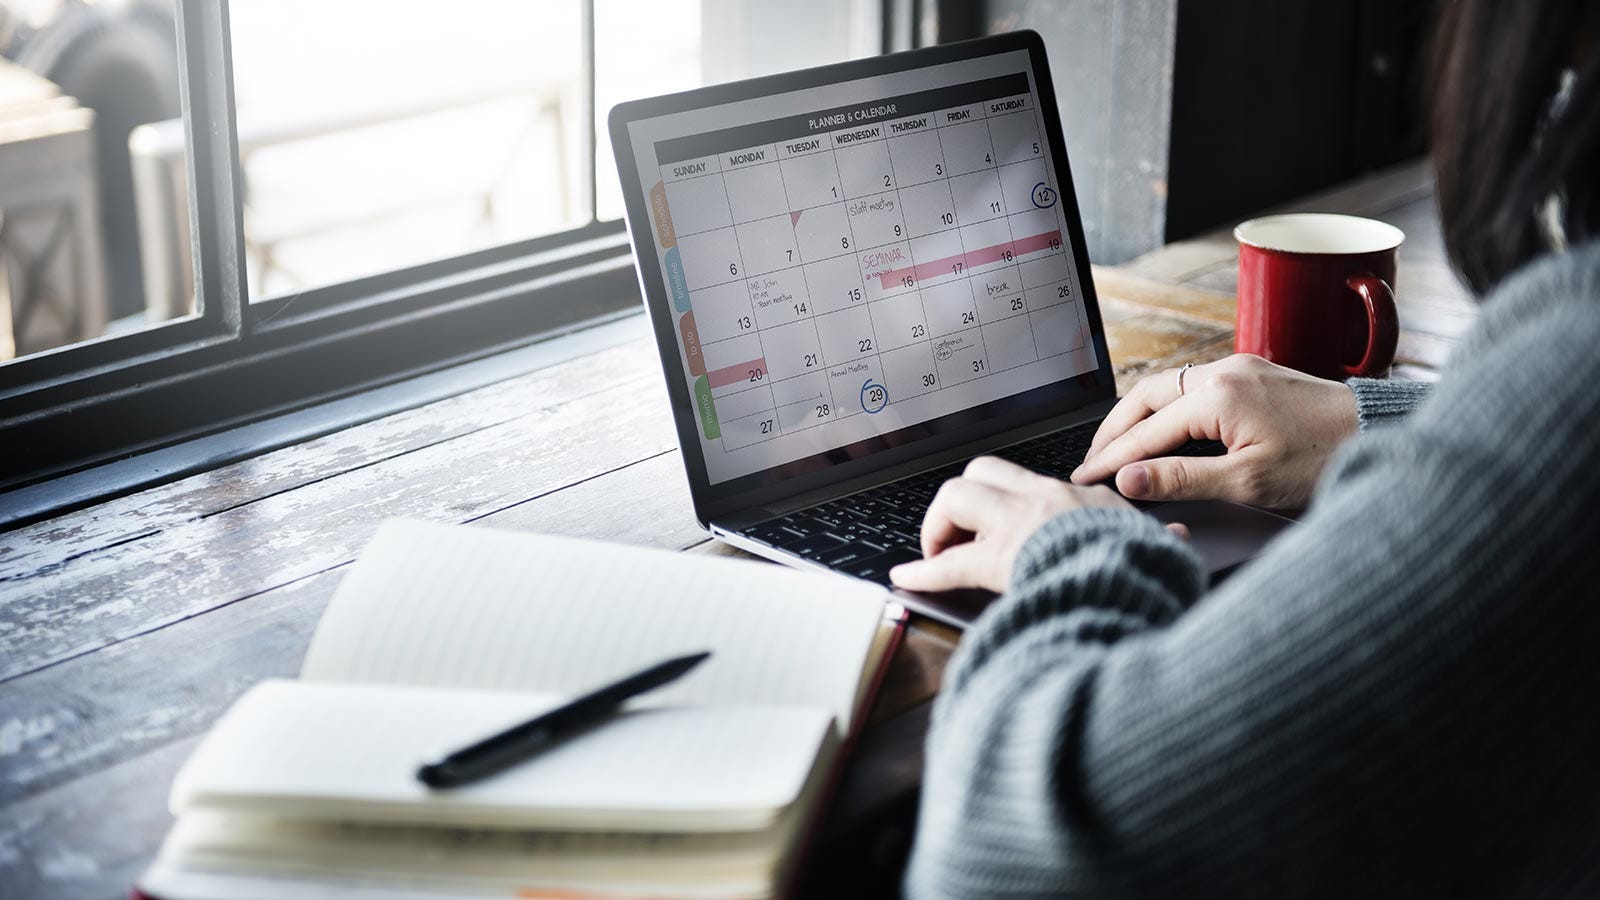 A woman typing something in a calendar on her laptop.